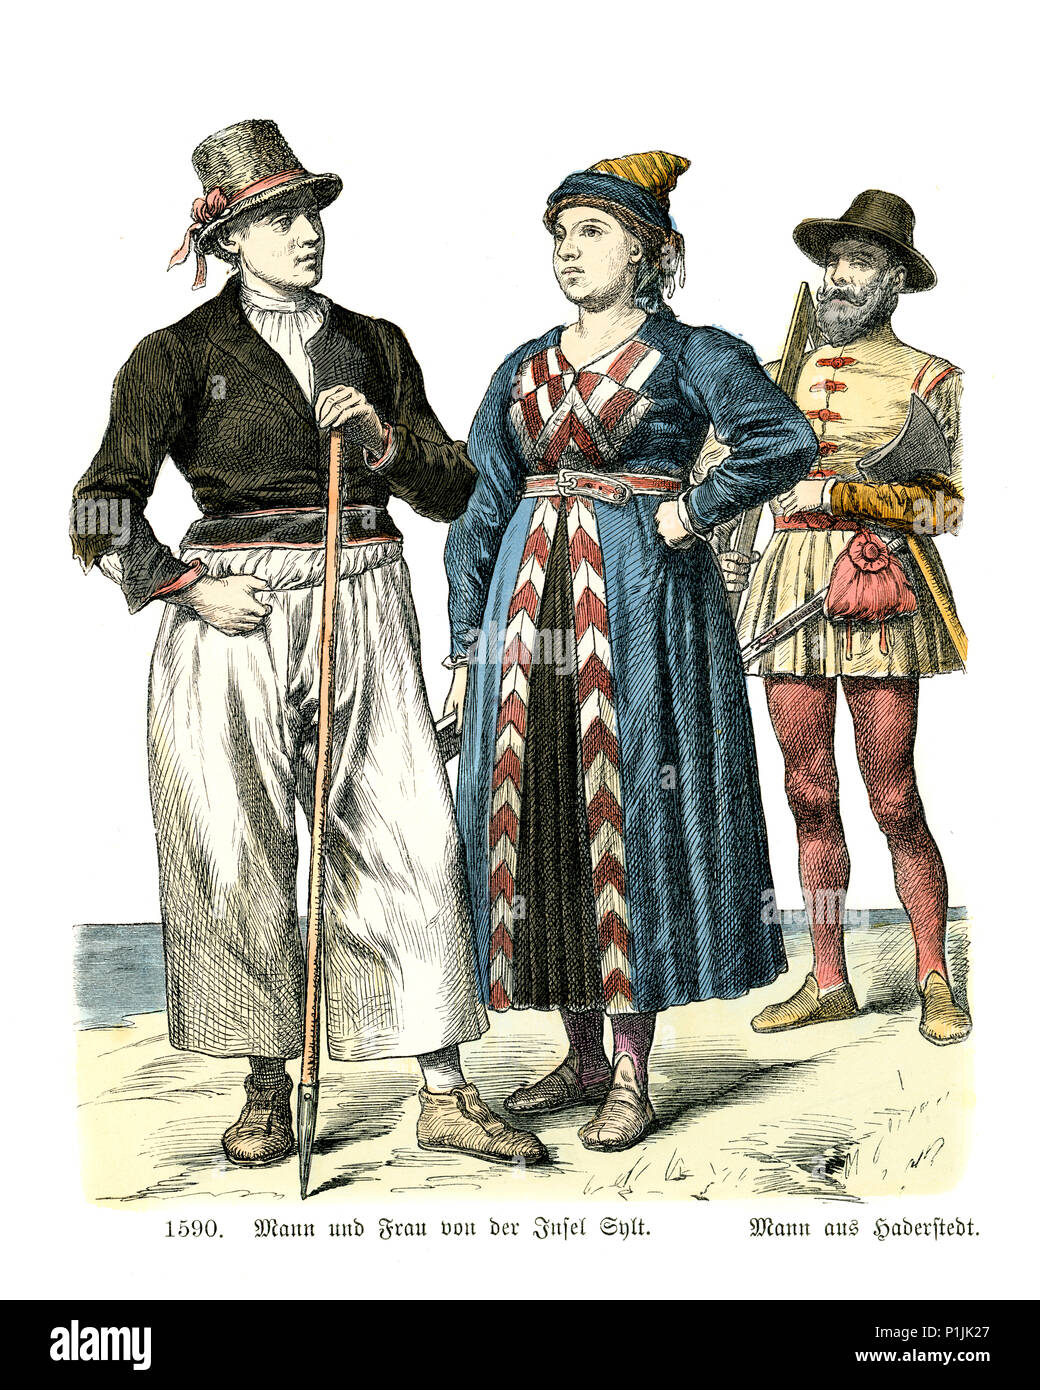 Vintage engraving of History of Fashion, Costumes of Germany 16th Century. Man and Woman of the Isle of Sylt, Schleswig-Holstein - Stock Image